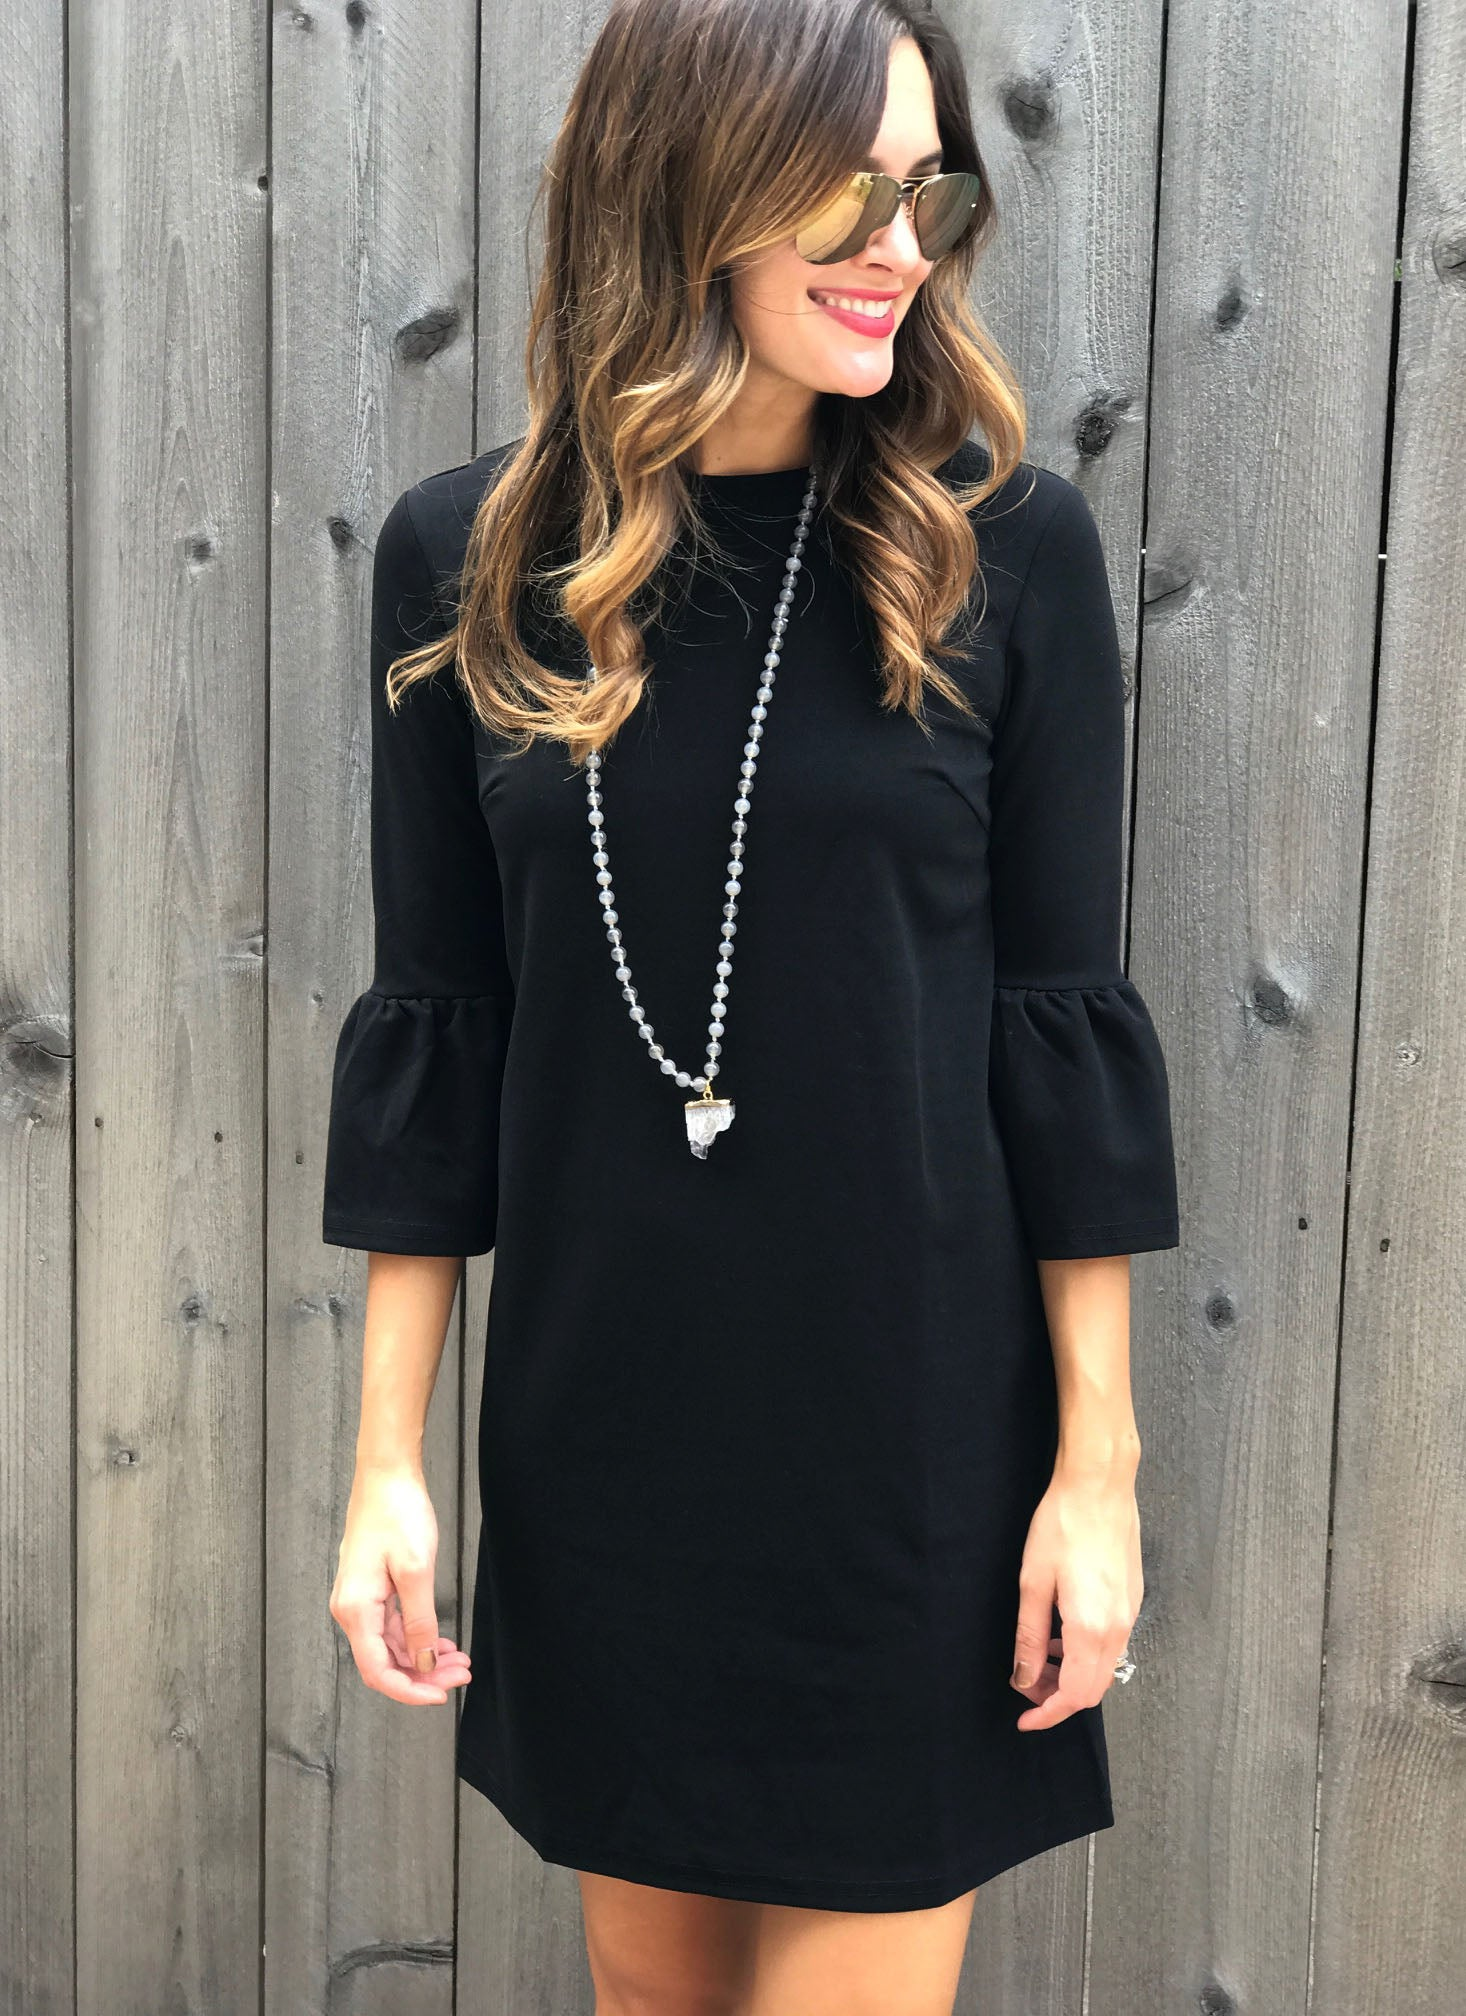 Bridger Dress in Black